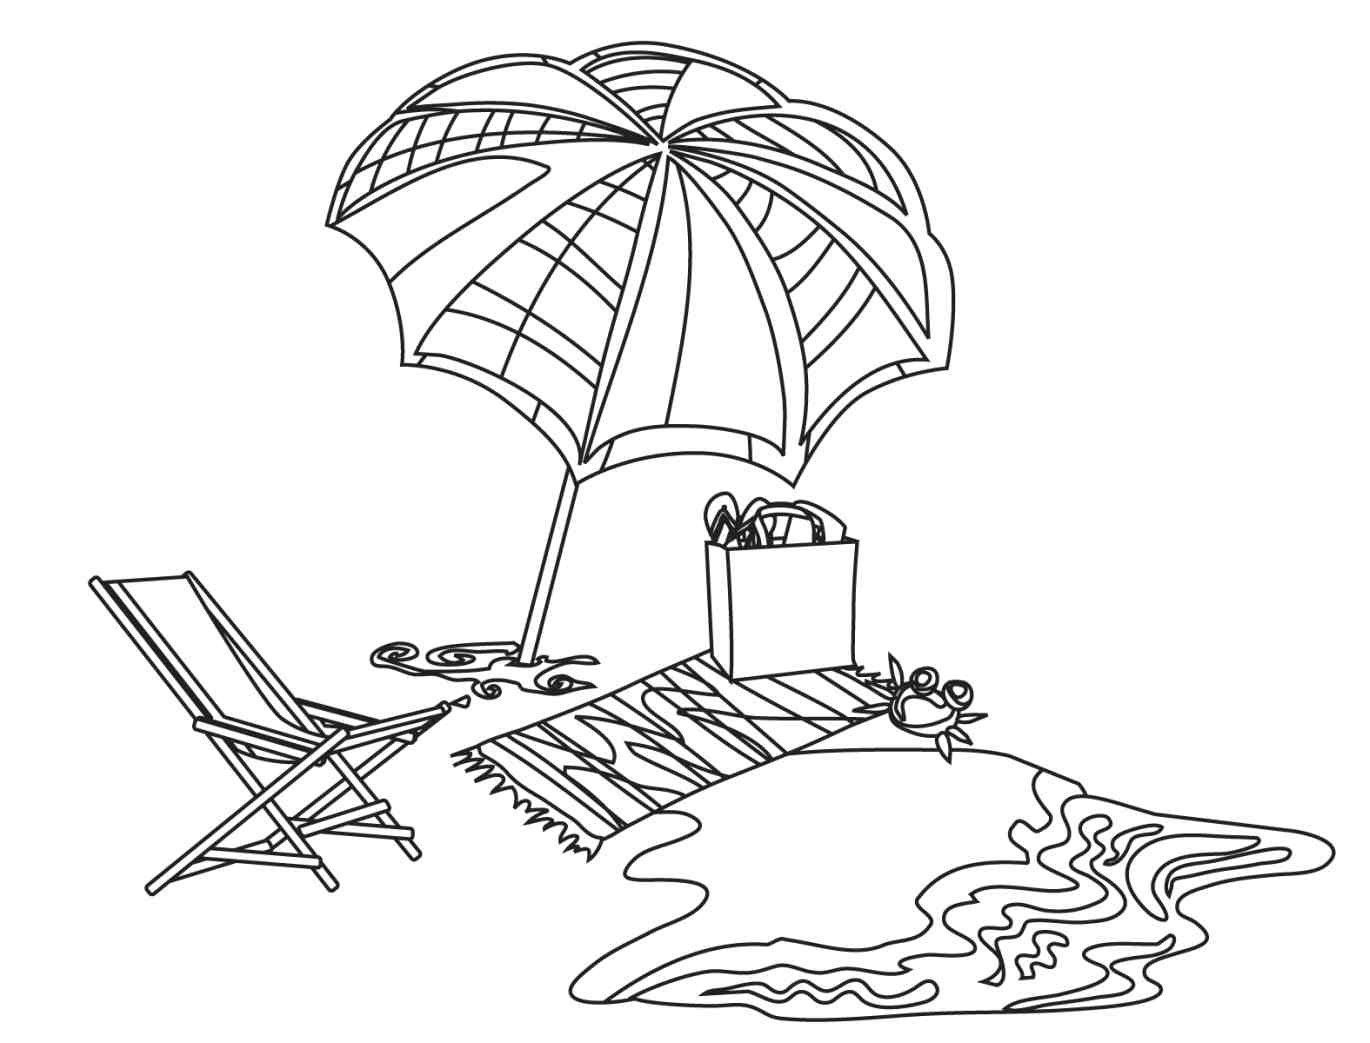 coloring beach pictures beach coloring pages beach scenes activities pictures coloring beach